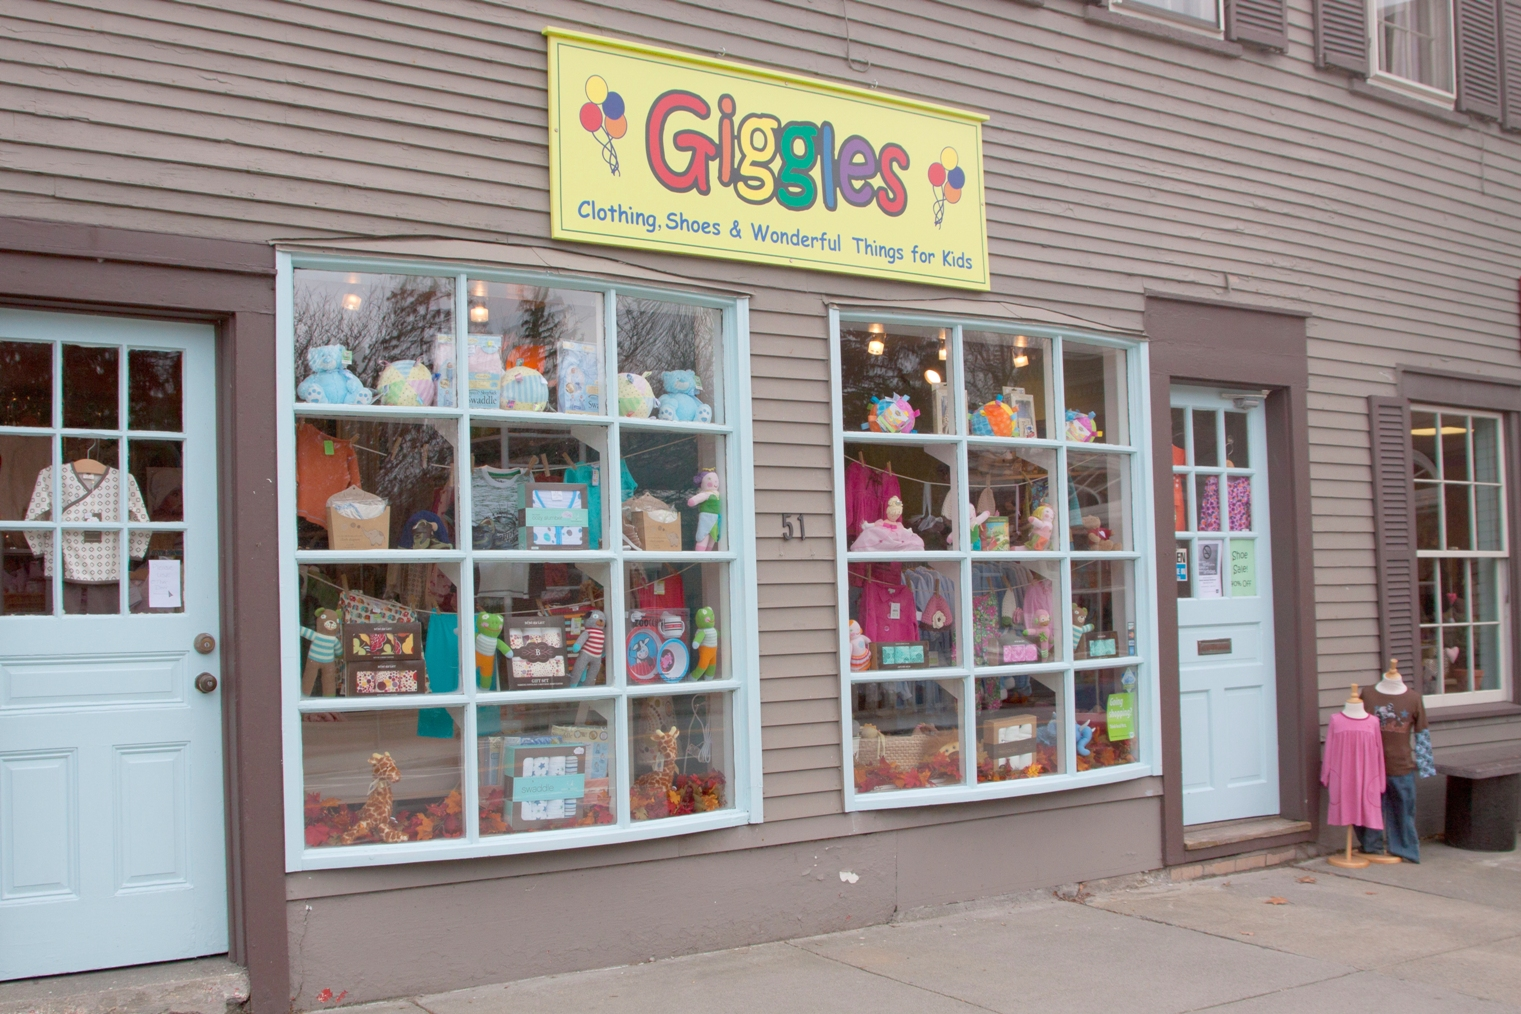 When Georgia Blu opened in West Seattle back in 2007, they received accolades for being Seattle's Best Children's Clothing Store across all local city